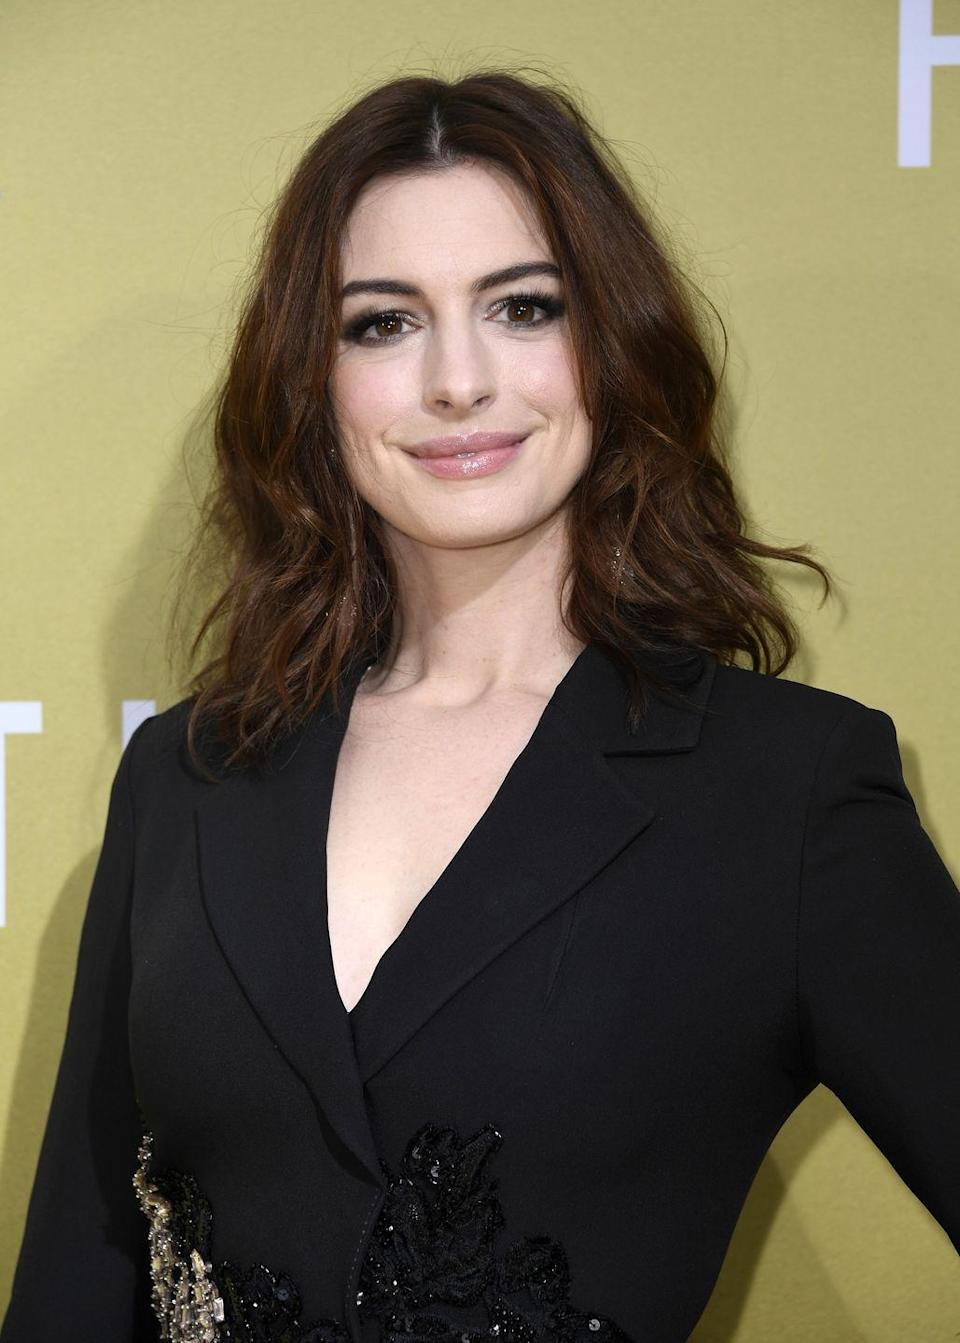 <p>Hathaway lost 25 pounds and shaved her head for the role of Fantine, a prostitute dying of tuberculosis, for<em> Les Misérables</em> in 2012.</p>